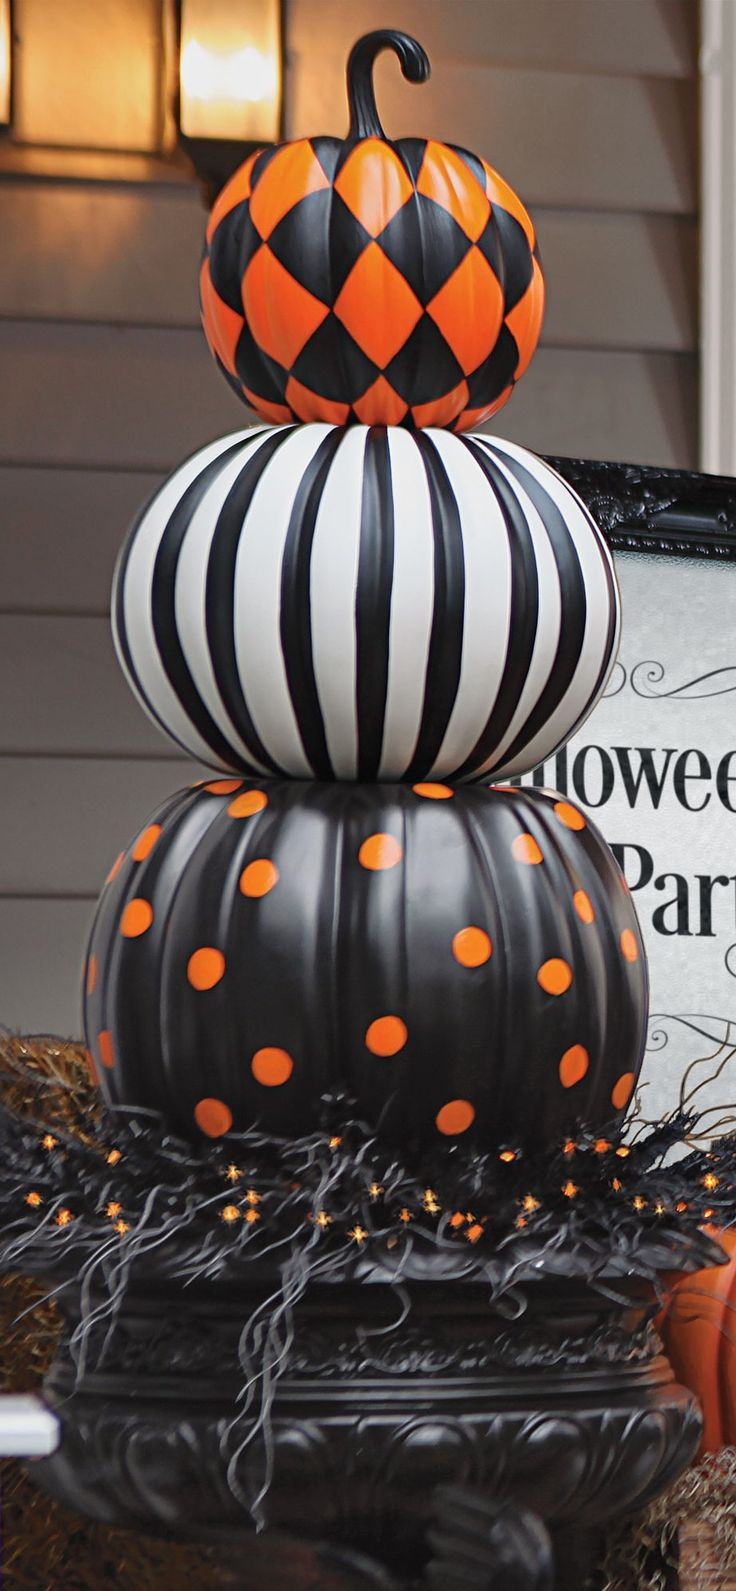 best  pumpkin decorations ideas on pinterest  pumpkin  - put a designer spin on decorating with gourds our halloween stackedpumpkins are both witty